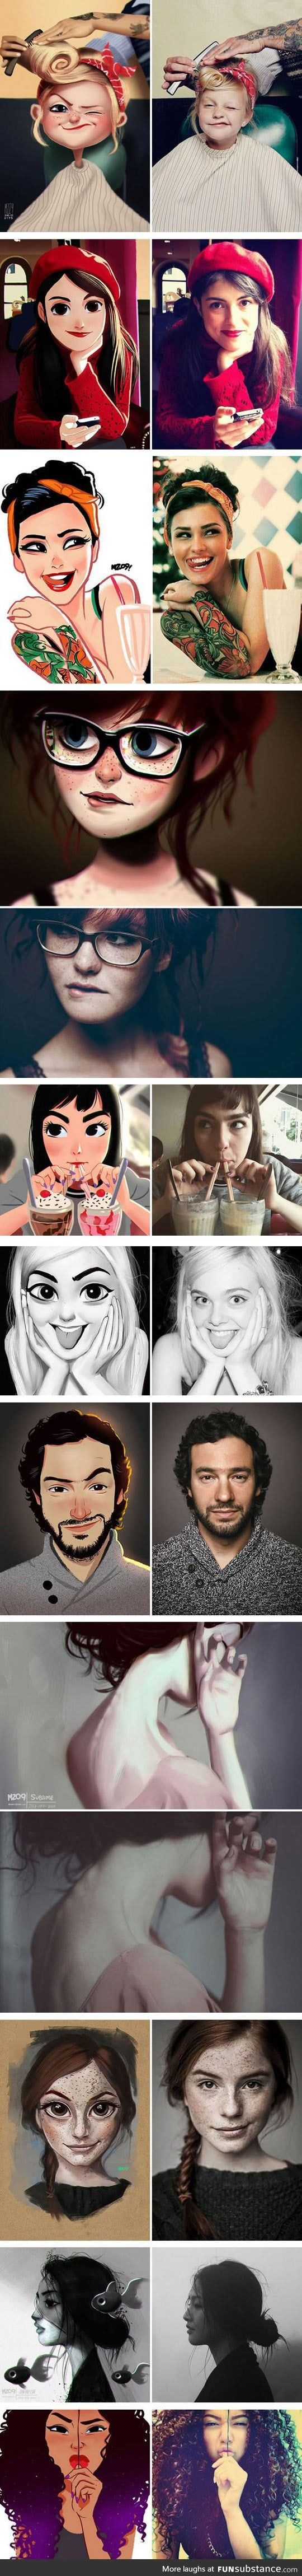 Artist turns photos of random people into fun illustrations